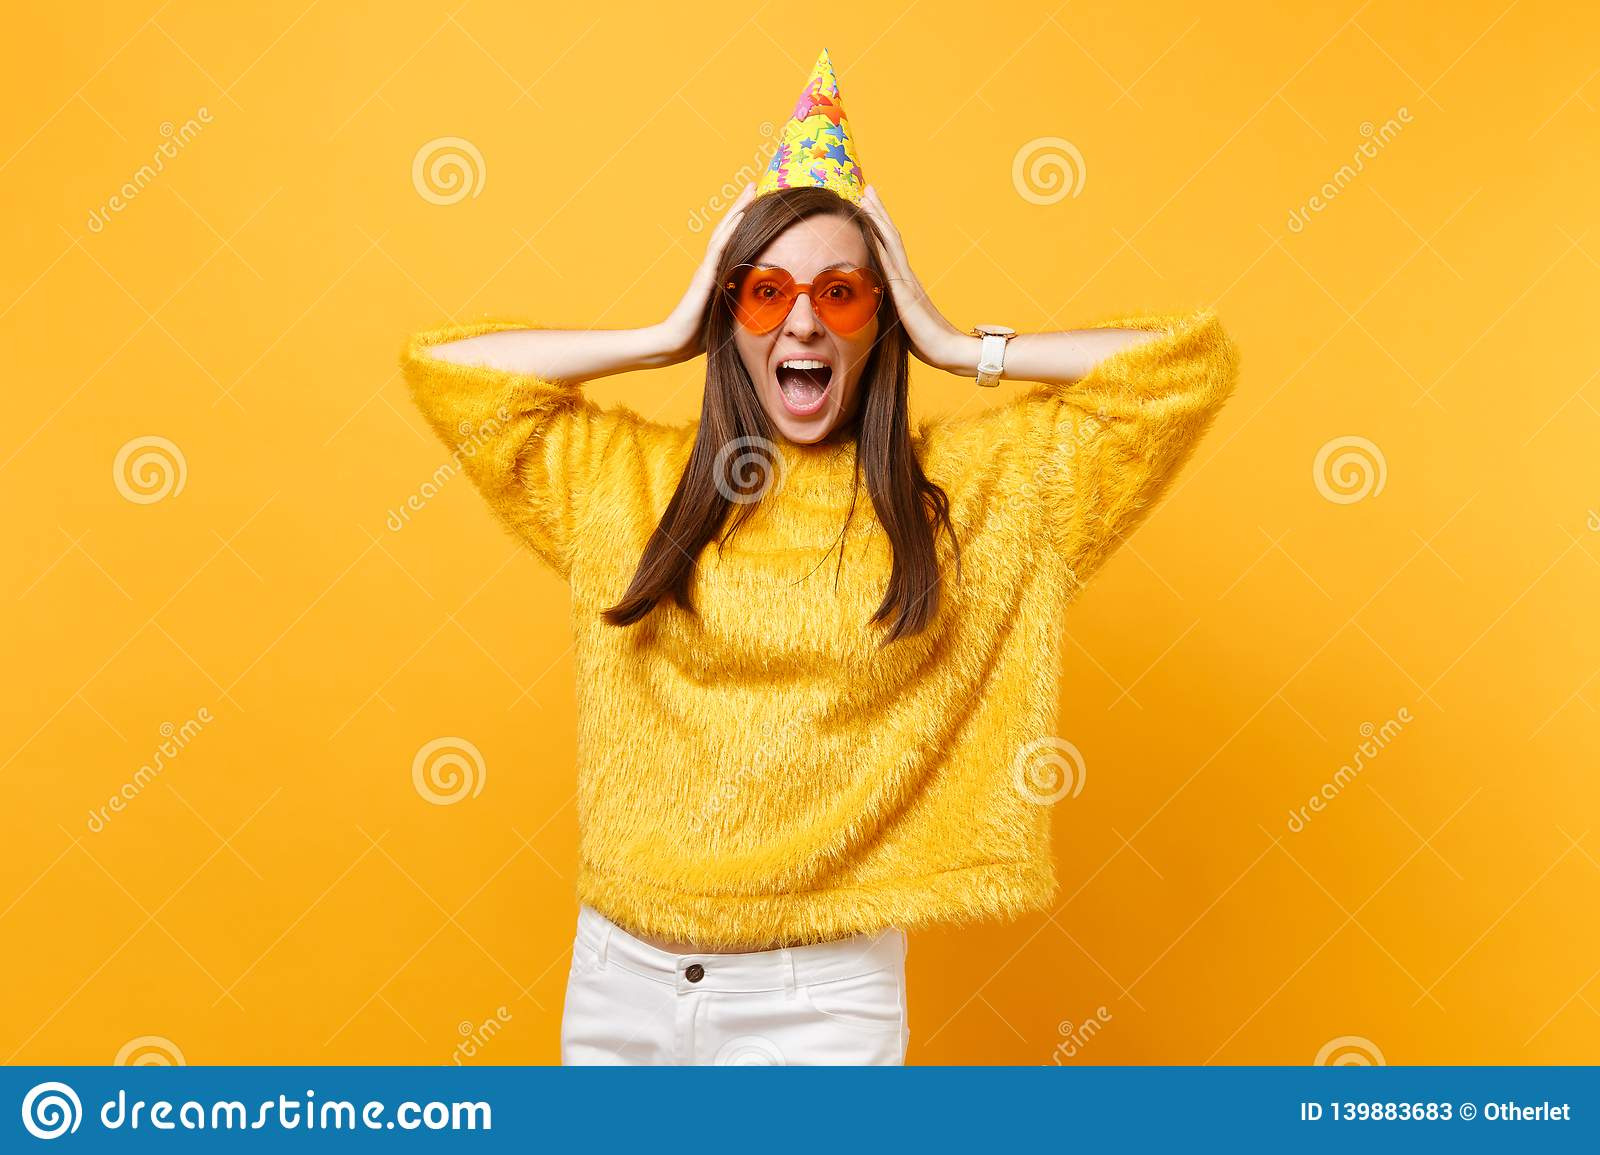 Portrait of excited joyful young woman in orange heart glasses and birthday party hat screaming, putting hands on head